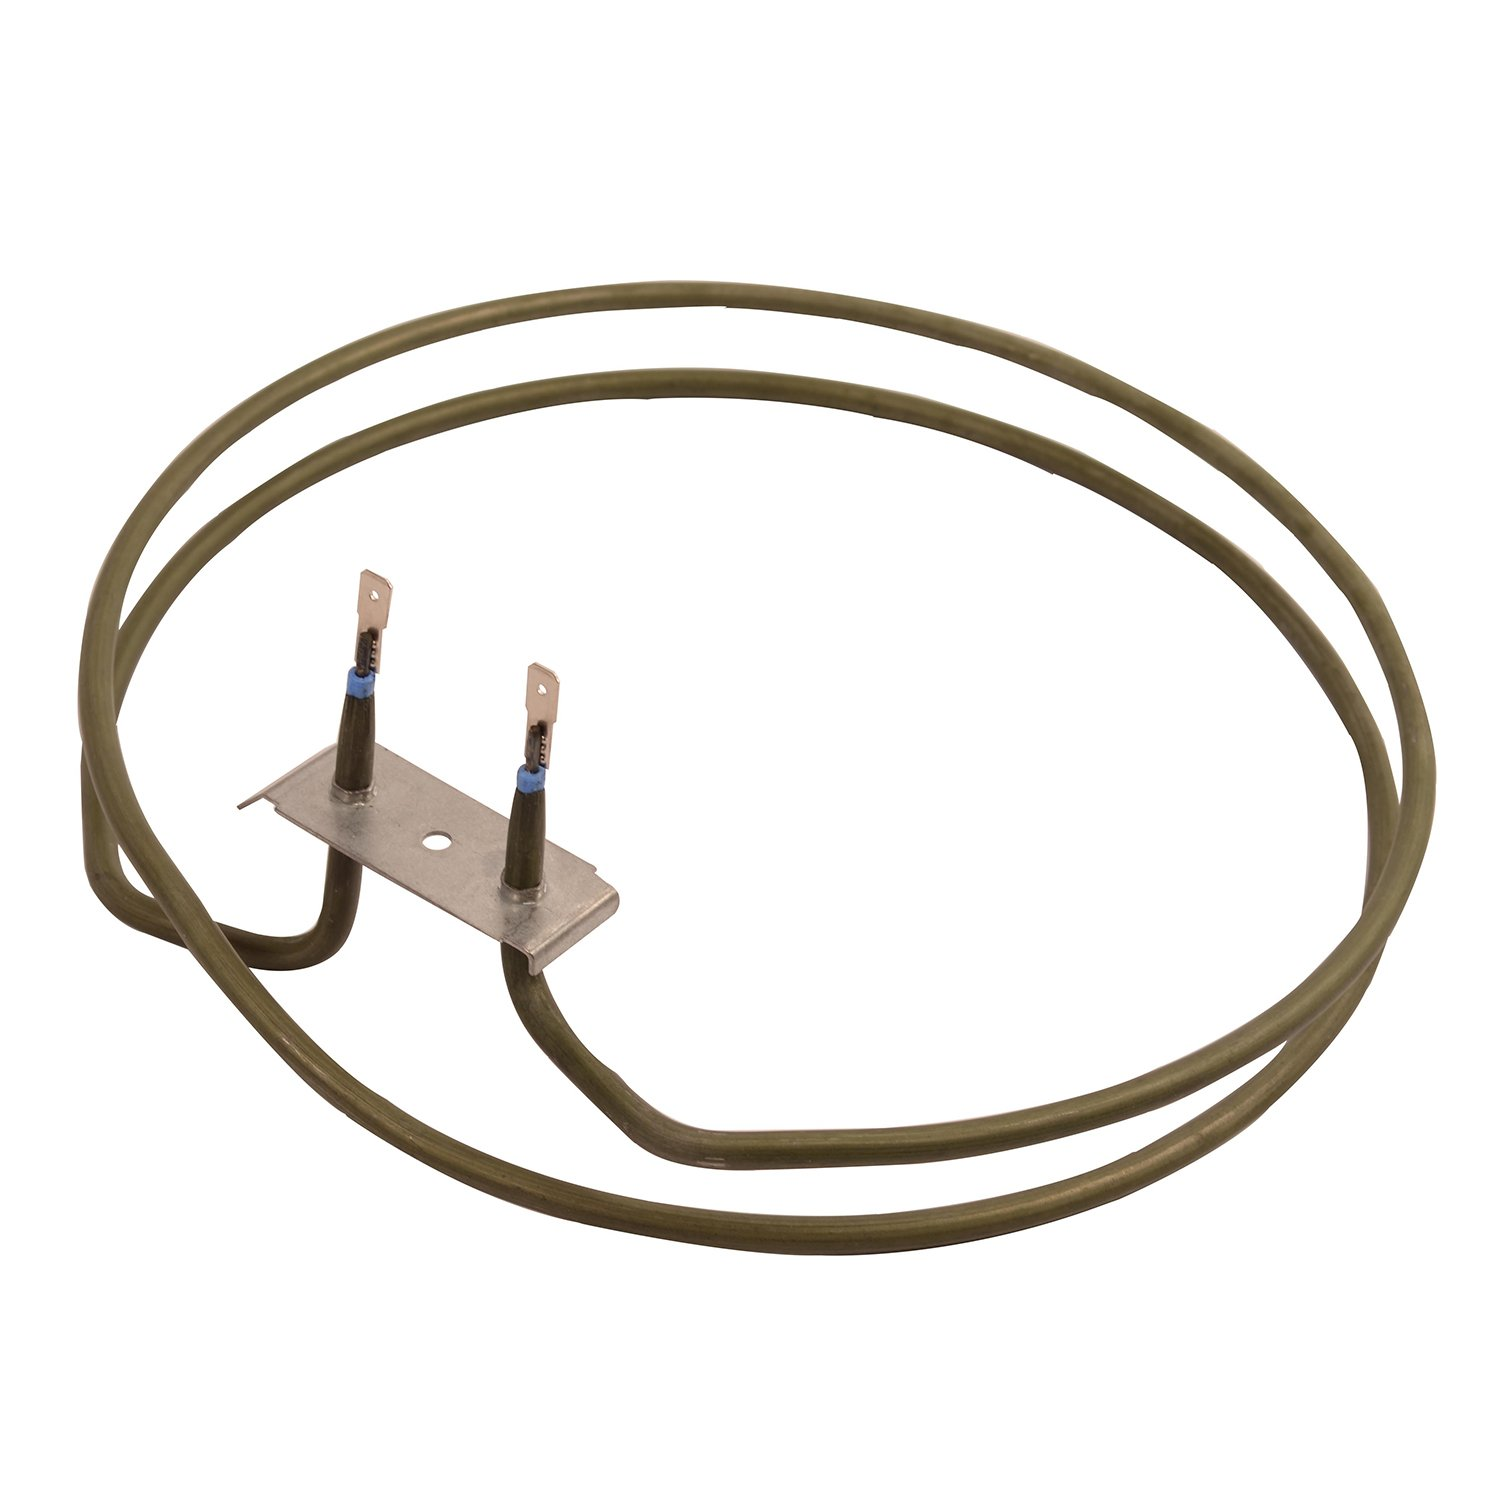 Hotpoint Oven Heating Element Replacement Hotpoint Fan Oven Element Heater 2500w 2 Turn Amazoncouk